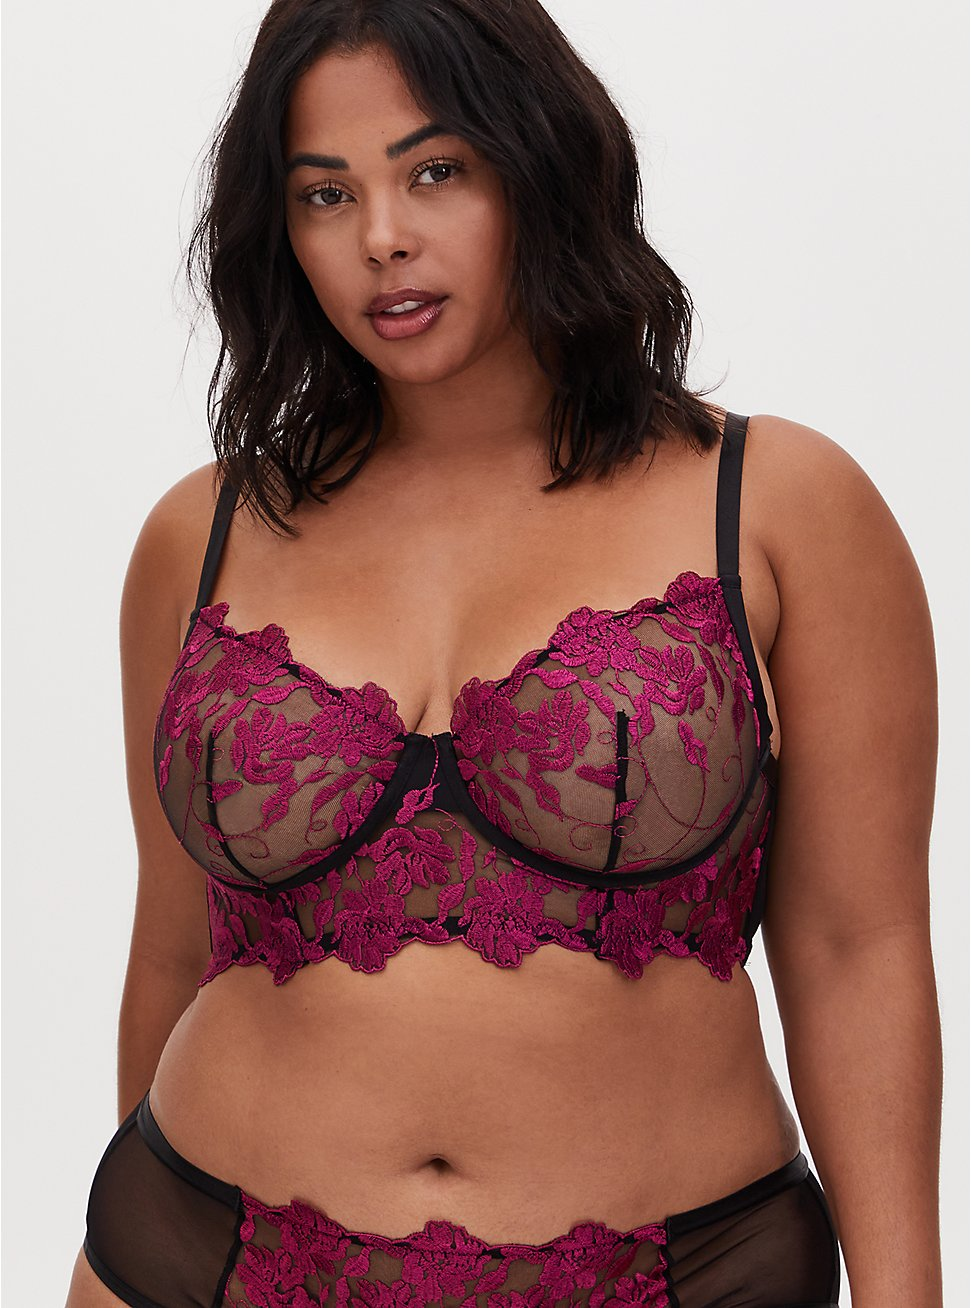 Plus Size Black Mesh & Berry Pink Embroidery Unlined Underwire Bralette, , hi-res